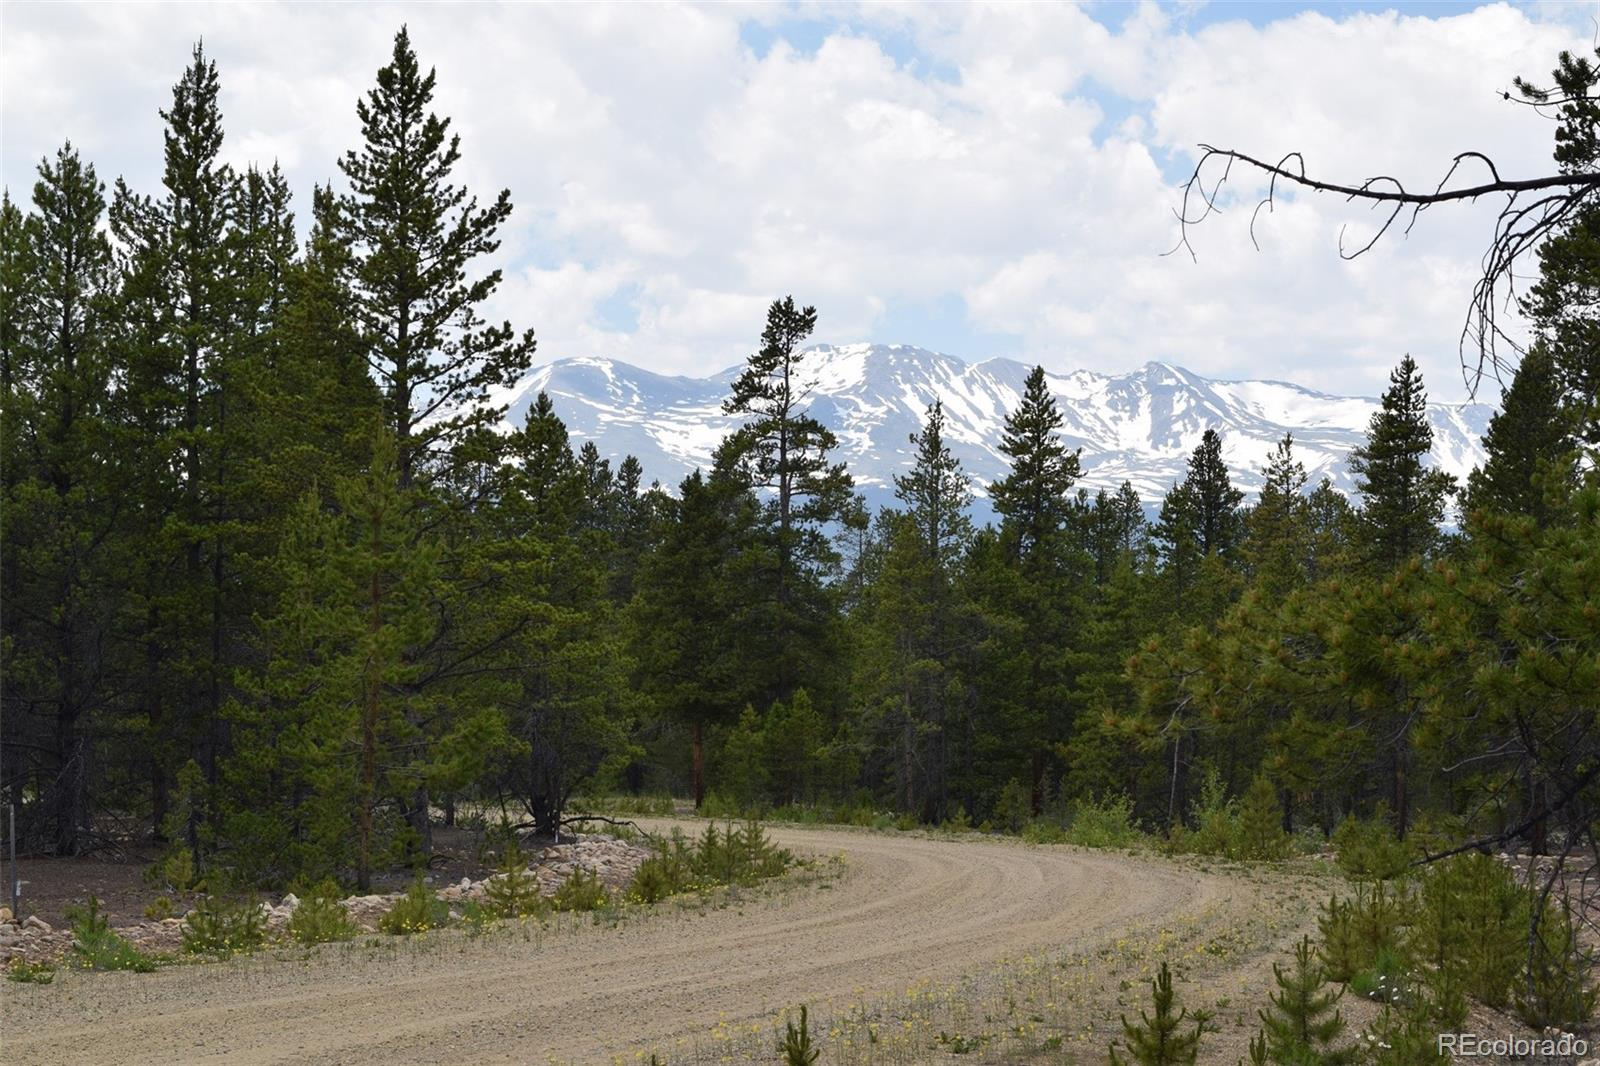 201 Snowshoe Rabbit Drive, Leadville, CO 80461 - Leadville, CO real estate listing